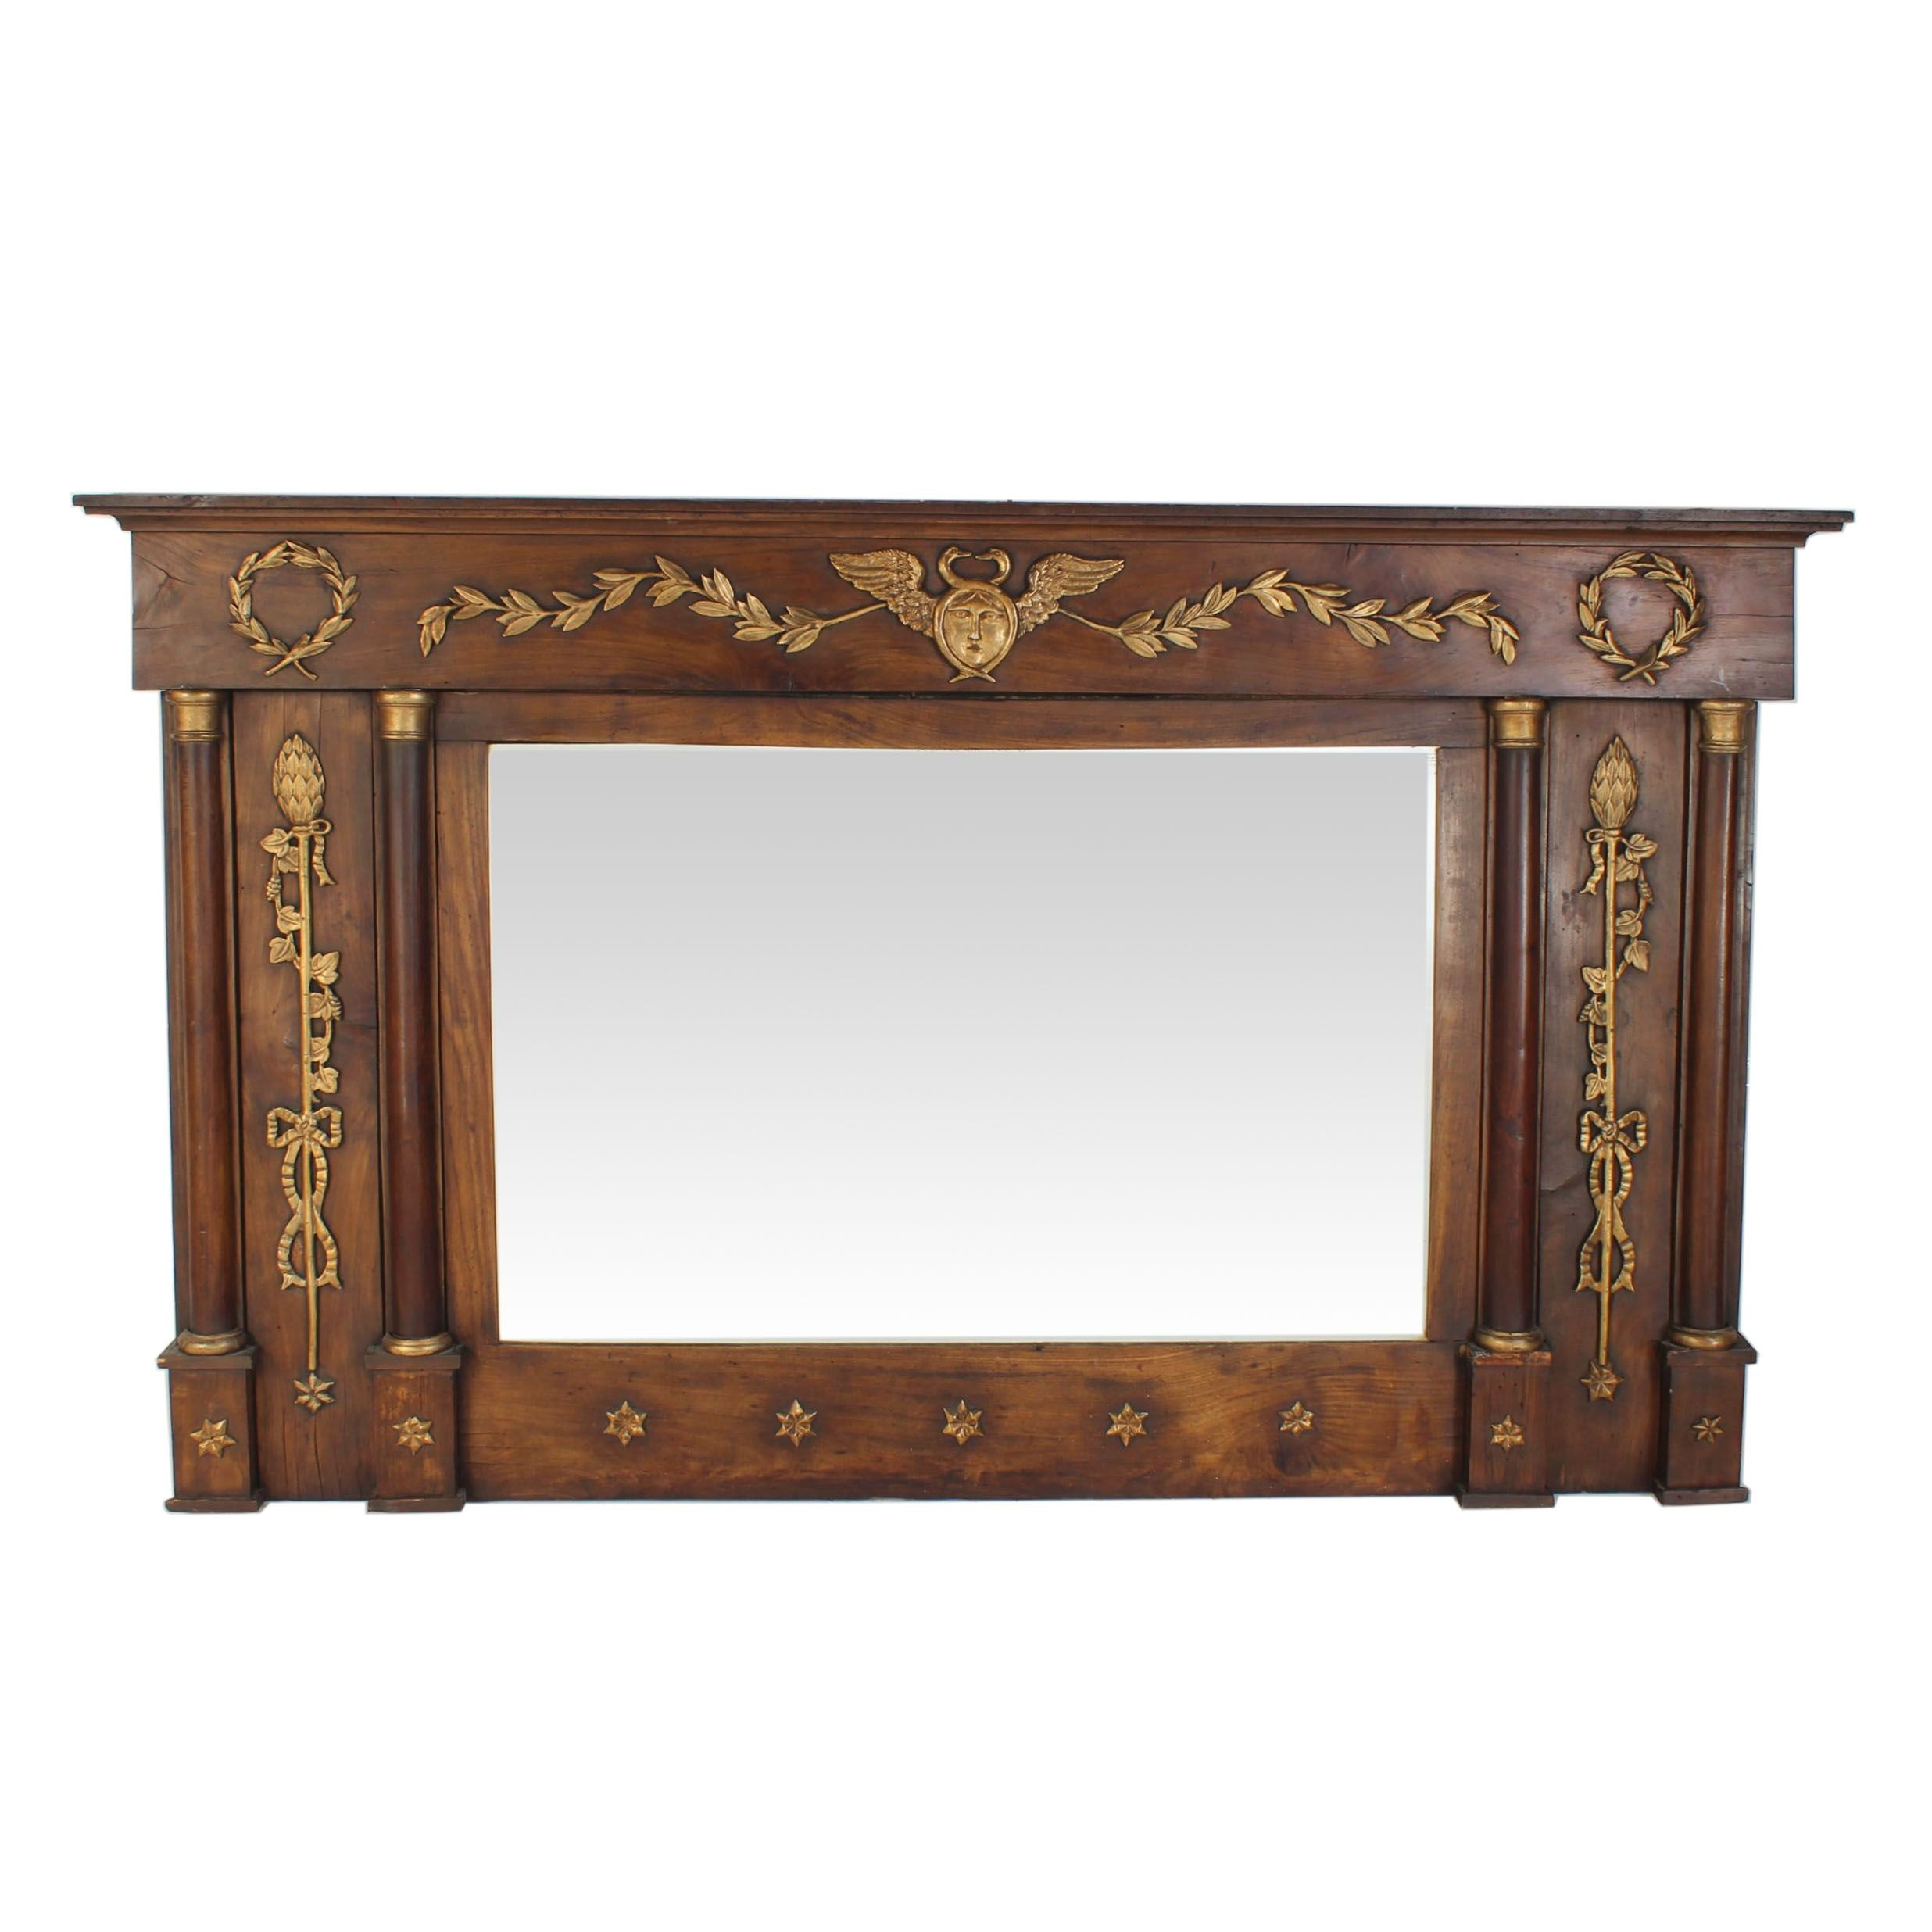 Neoclassical Style Walnut and Parcel-Gilt Overmantel Mirror, 19th Century